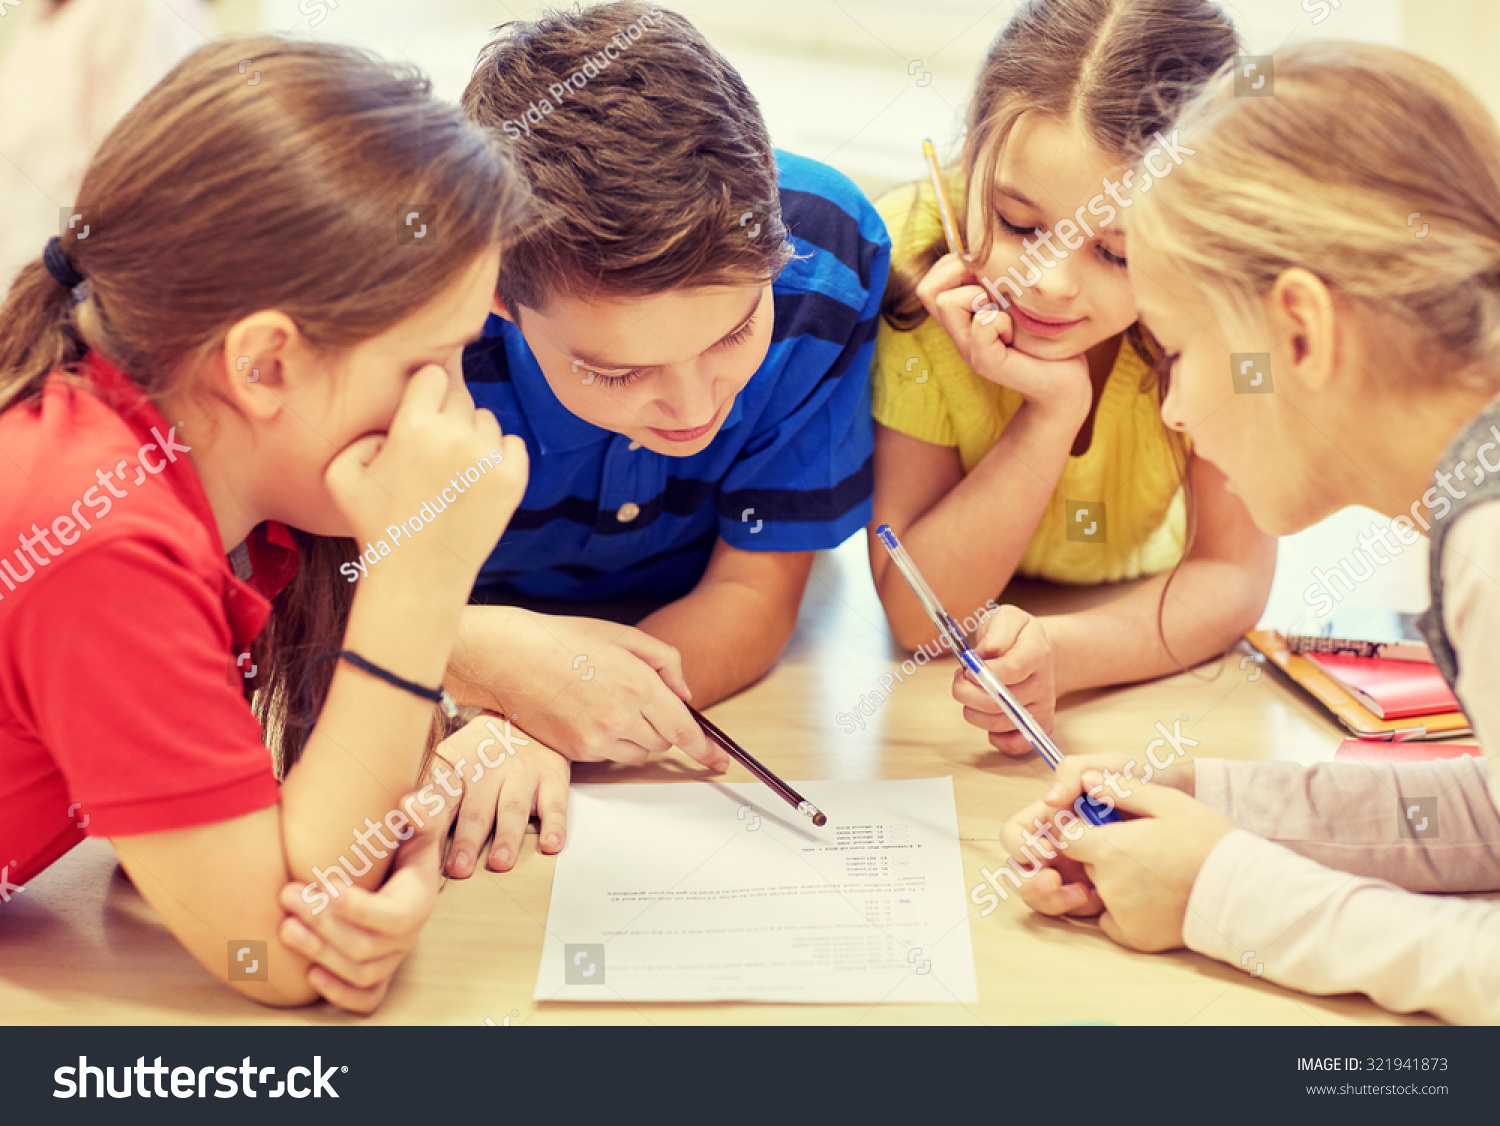 education elementary school learning people concept stock photo